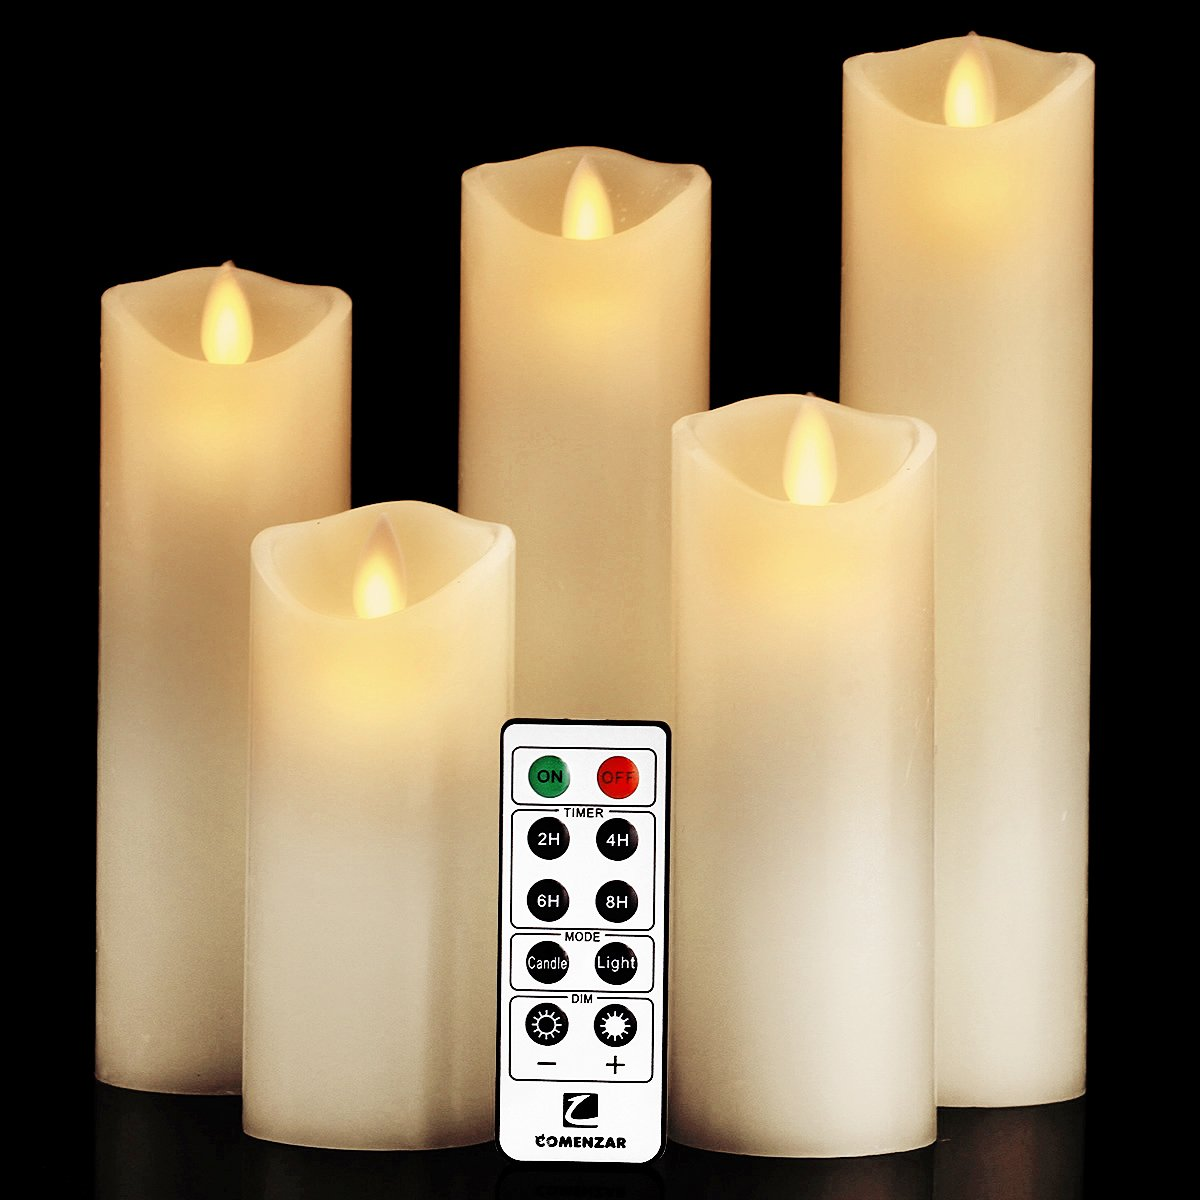 comenzar Flameless Candles, Battery Candles Set (H 5'' 6'' 7'' 8'' 9'' x D 2.2'') Real Wax Pillar Led Candles with Remote Timer (Ivory White)